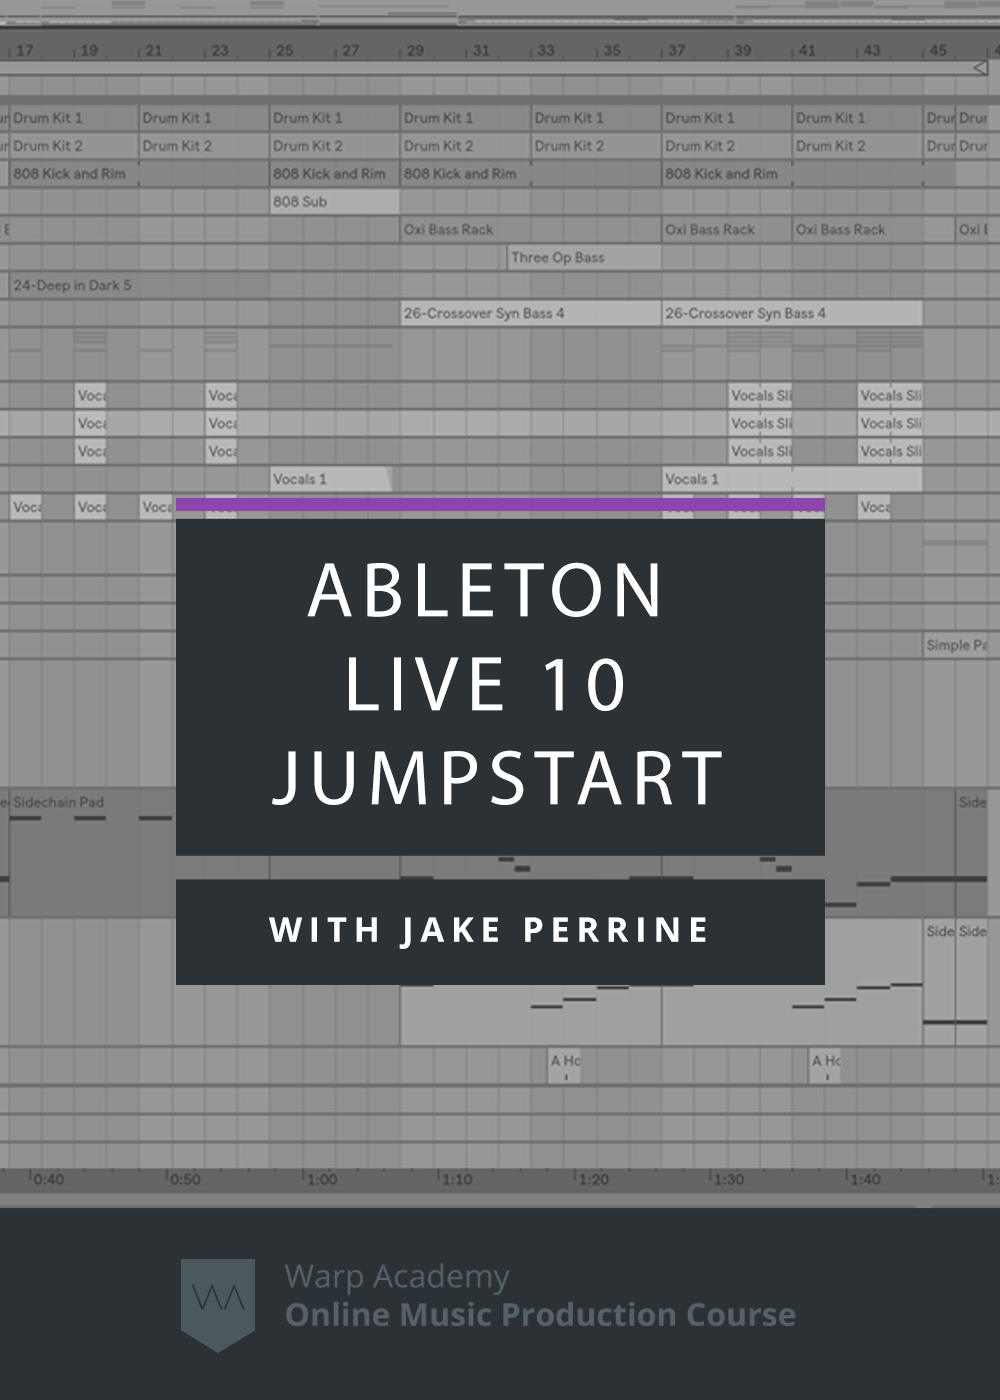 Ableton Live 10 Jumpstart- Product Page Image